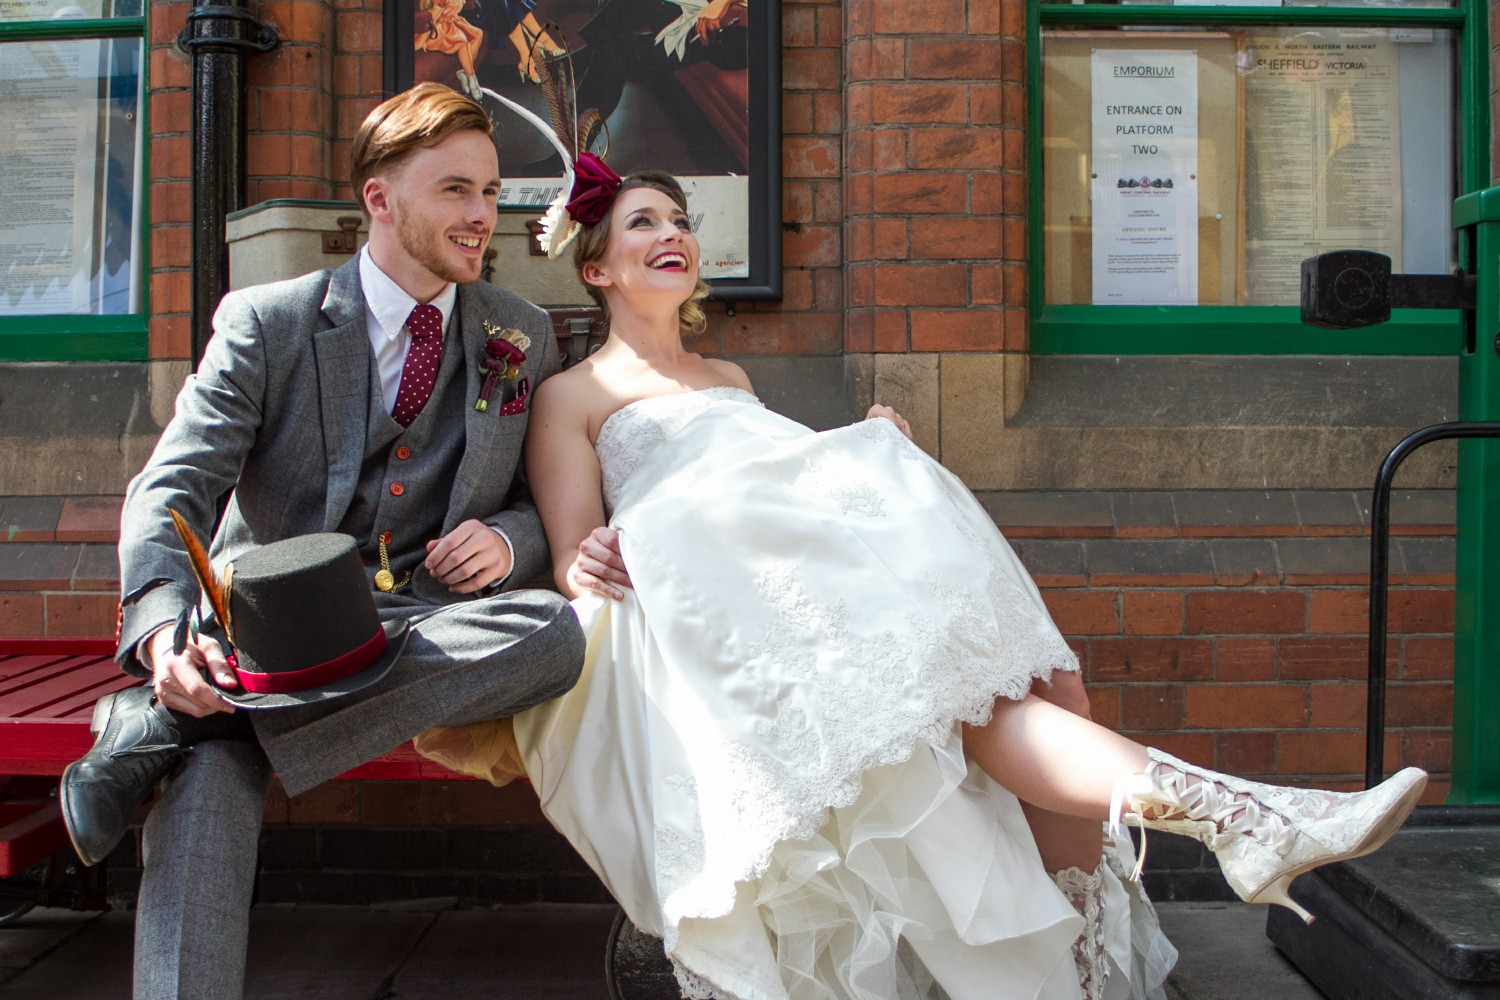 Iso Elegant Photography - Leicester wedding network - Railway wedding - vintage wedding 16